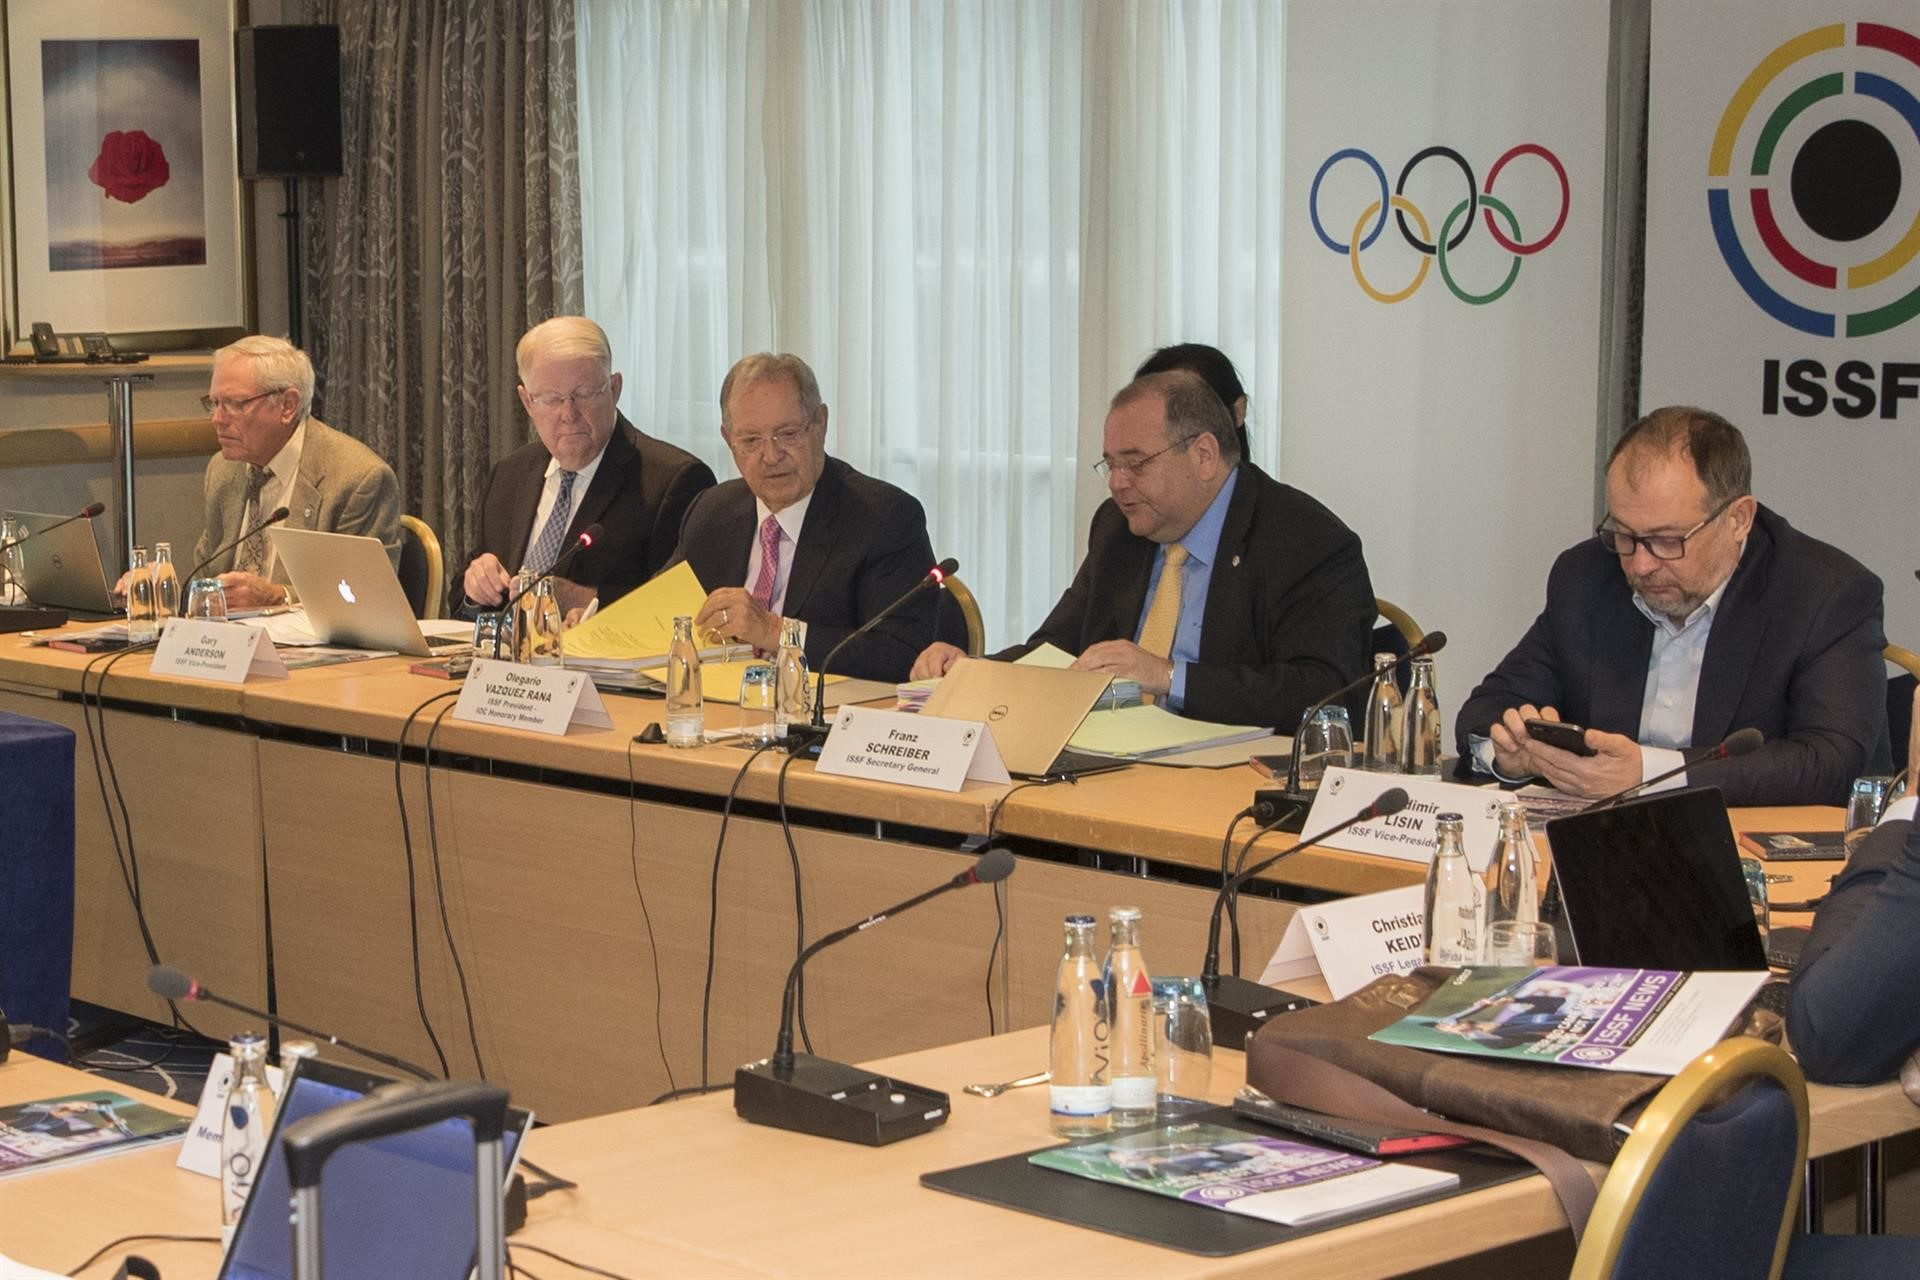 Labour costs at the International Shooting Sport Federation have risen by 22 per cent, according to new accounts ©ISSF